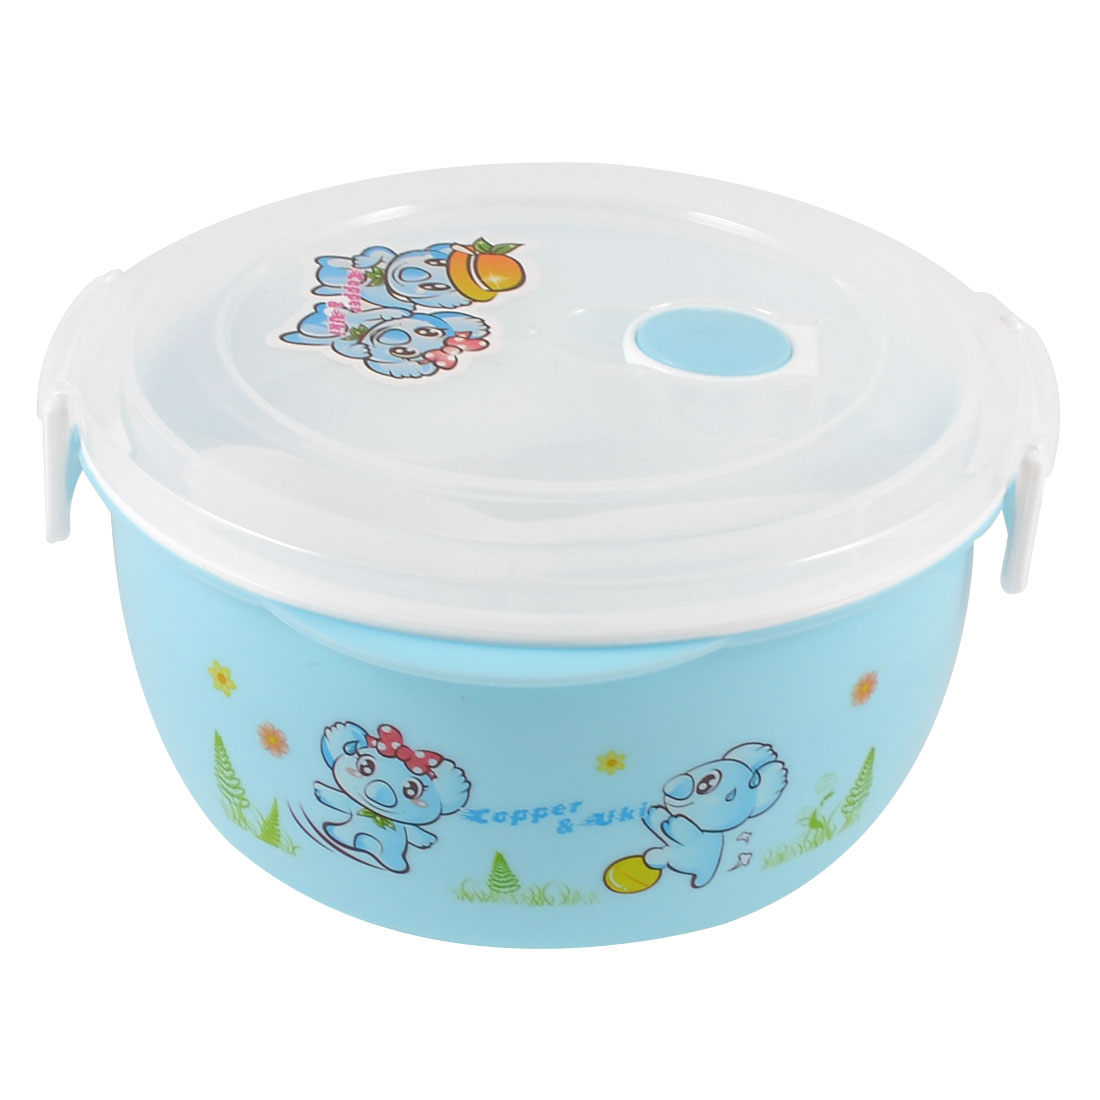 Household Cartoon Koala Printed 3 Compartments Light Blue Dinner Case Lunch Box